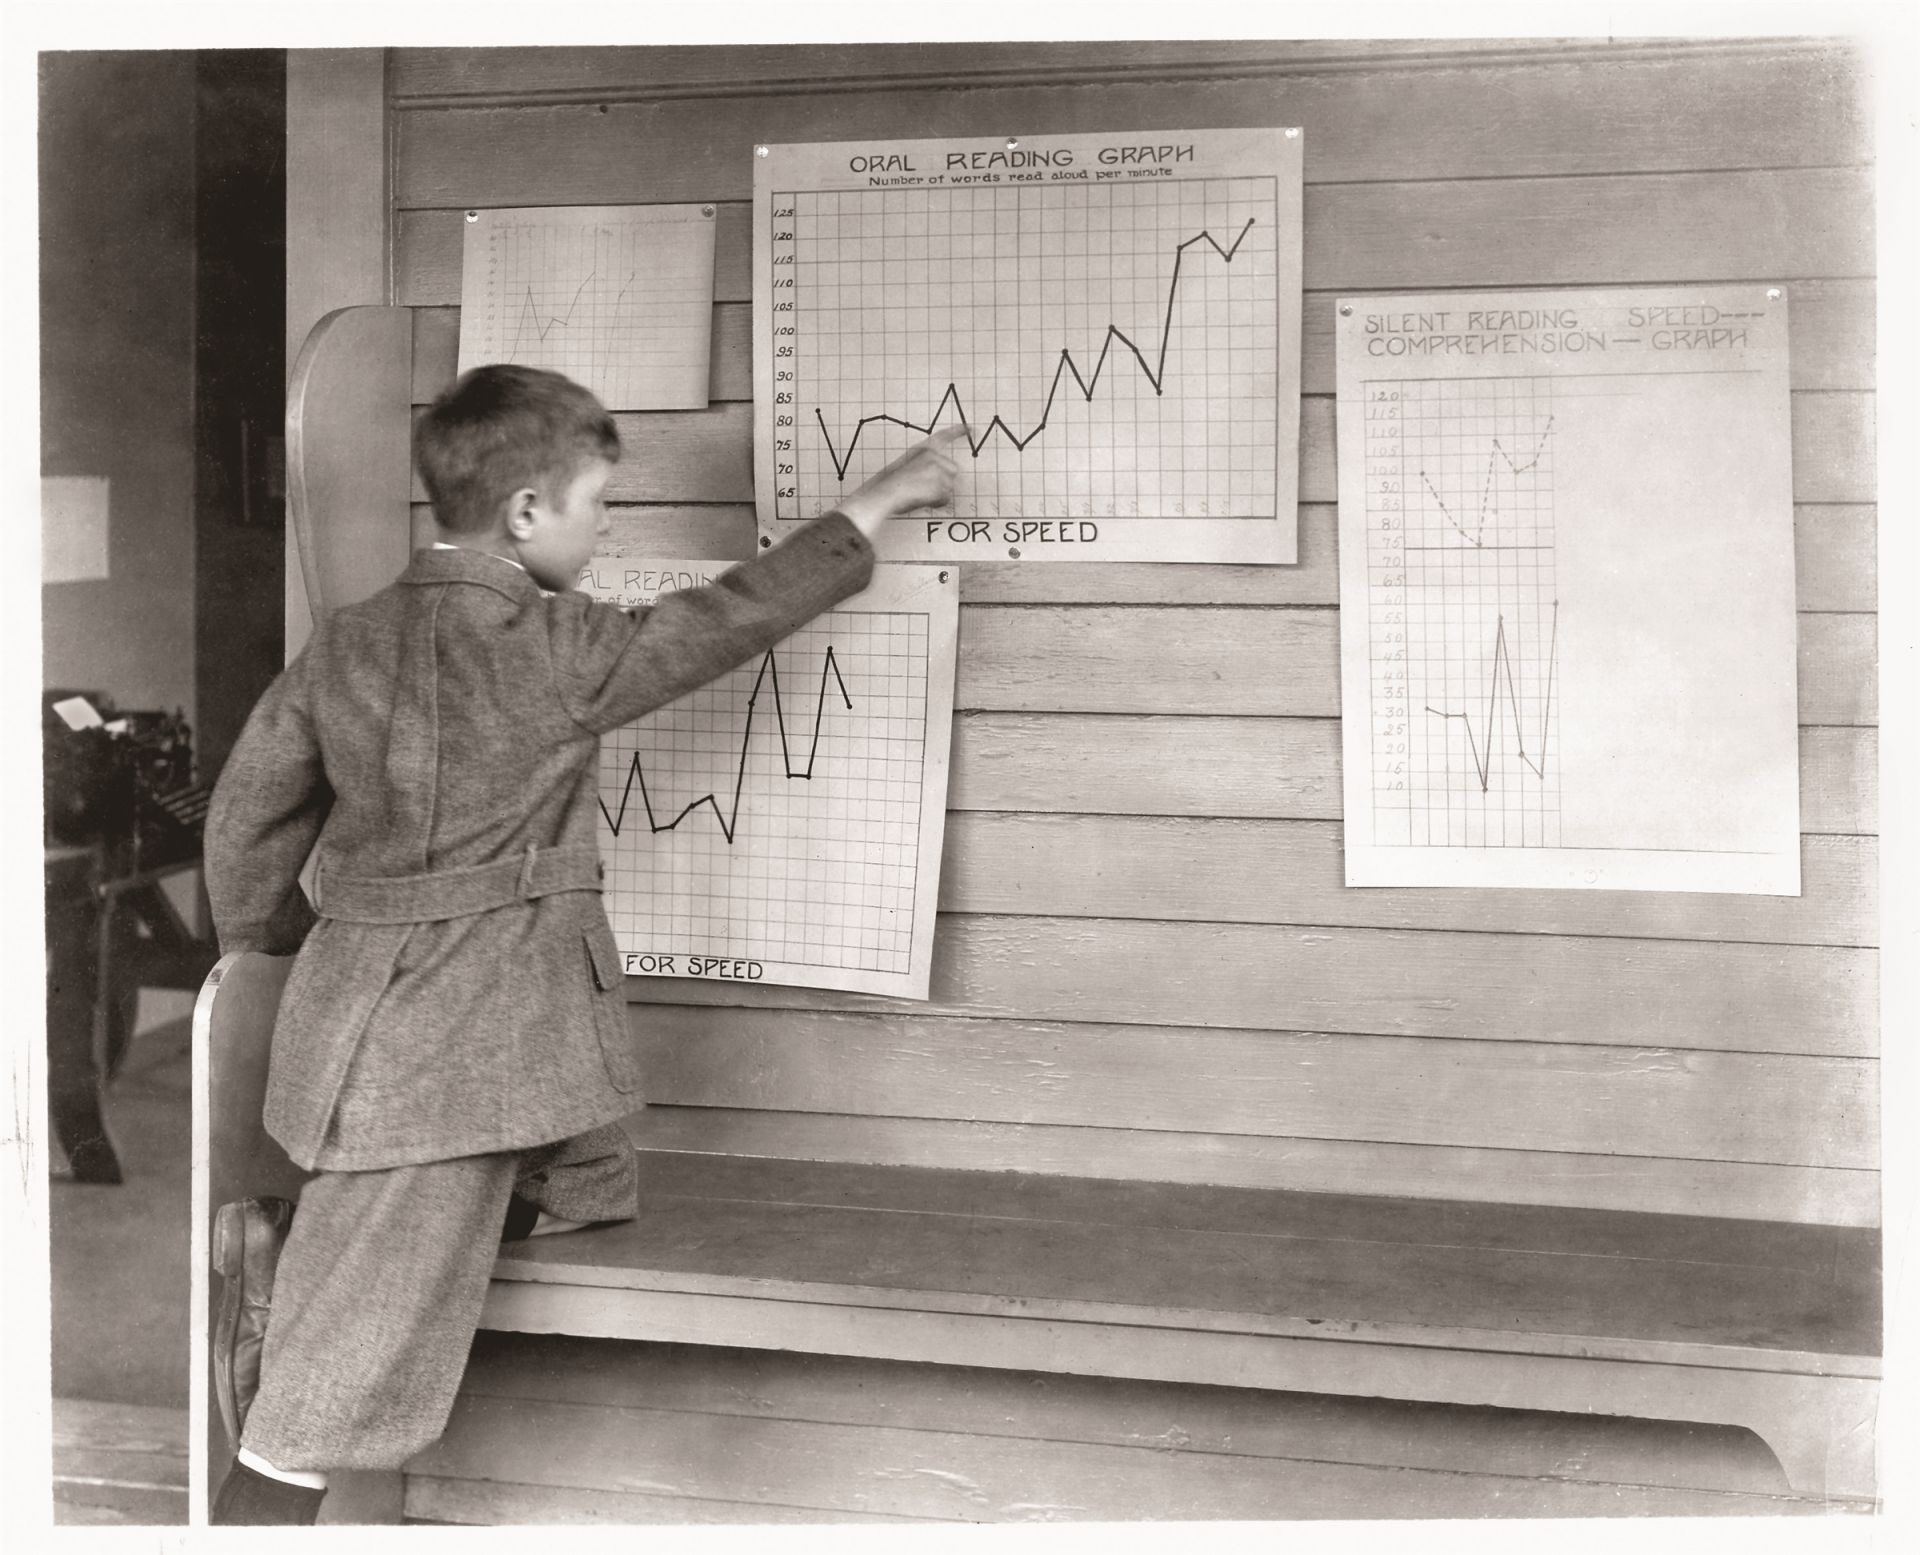 A middle school student charts his oral reading skills. (c. 1920s)